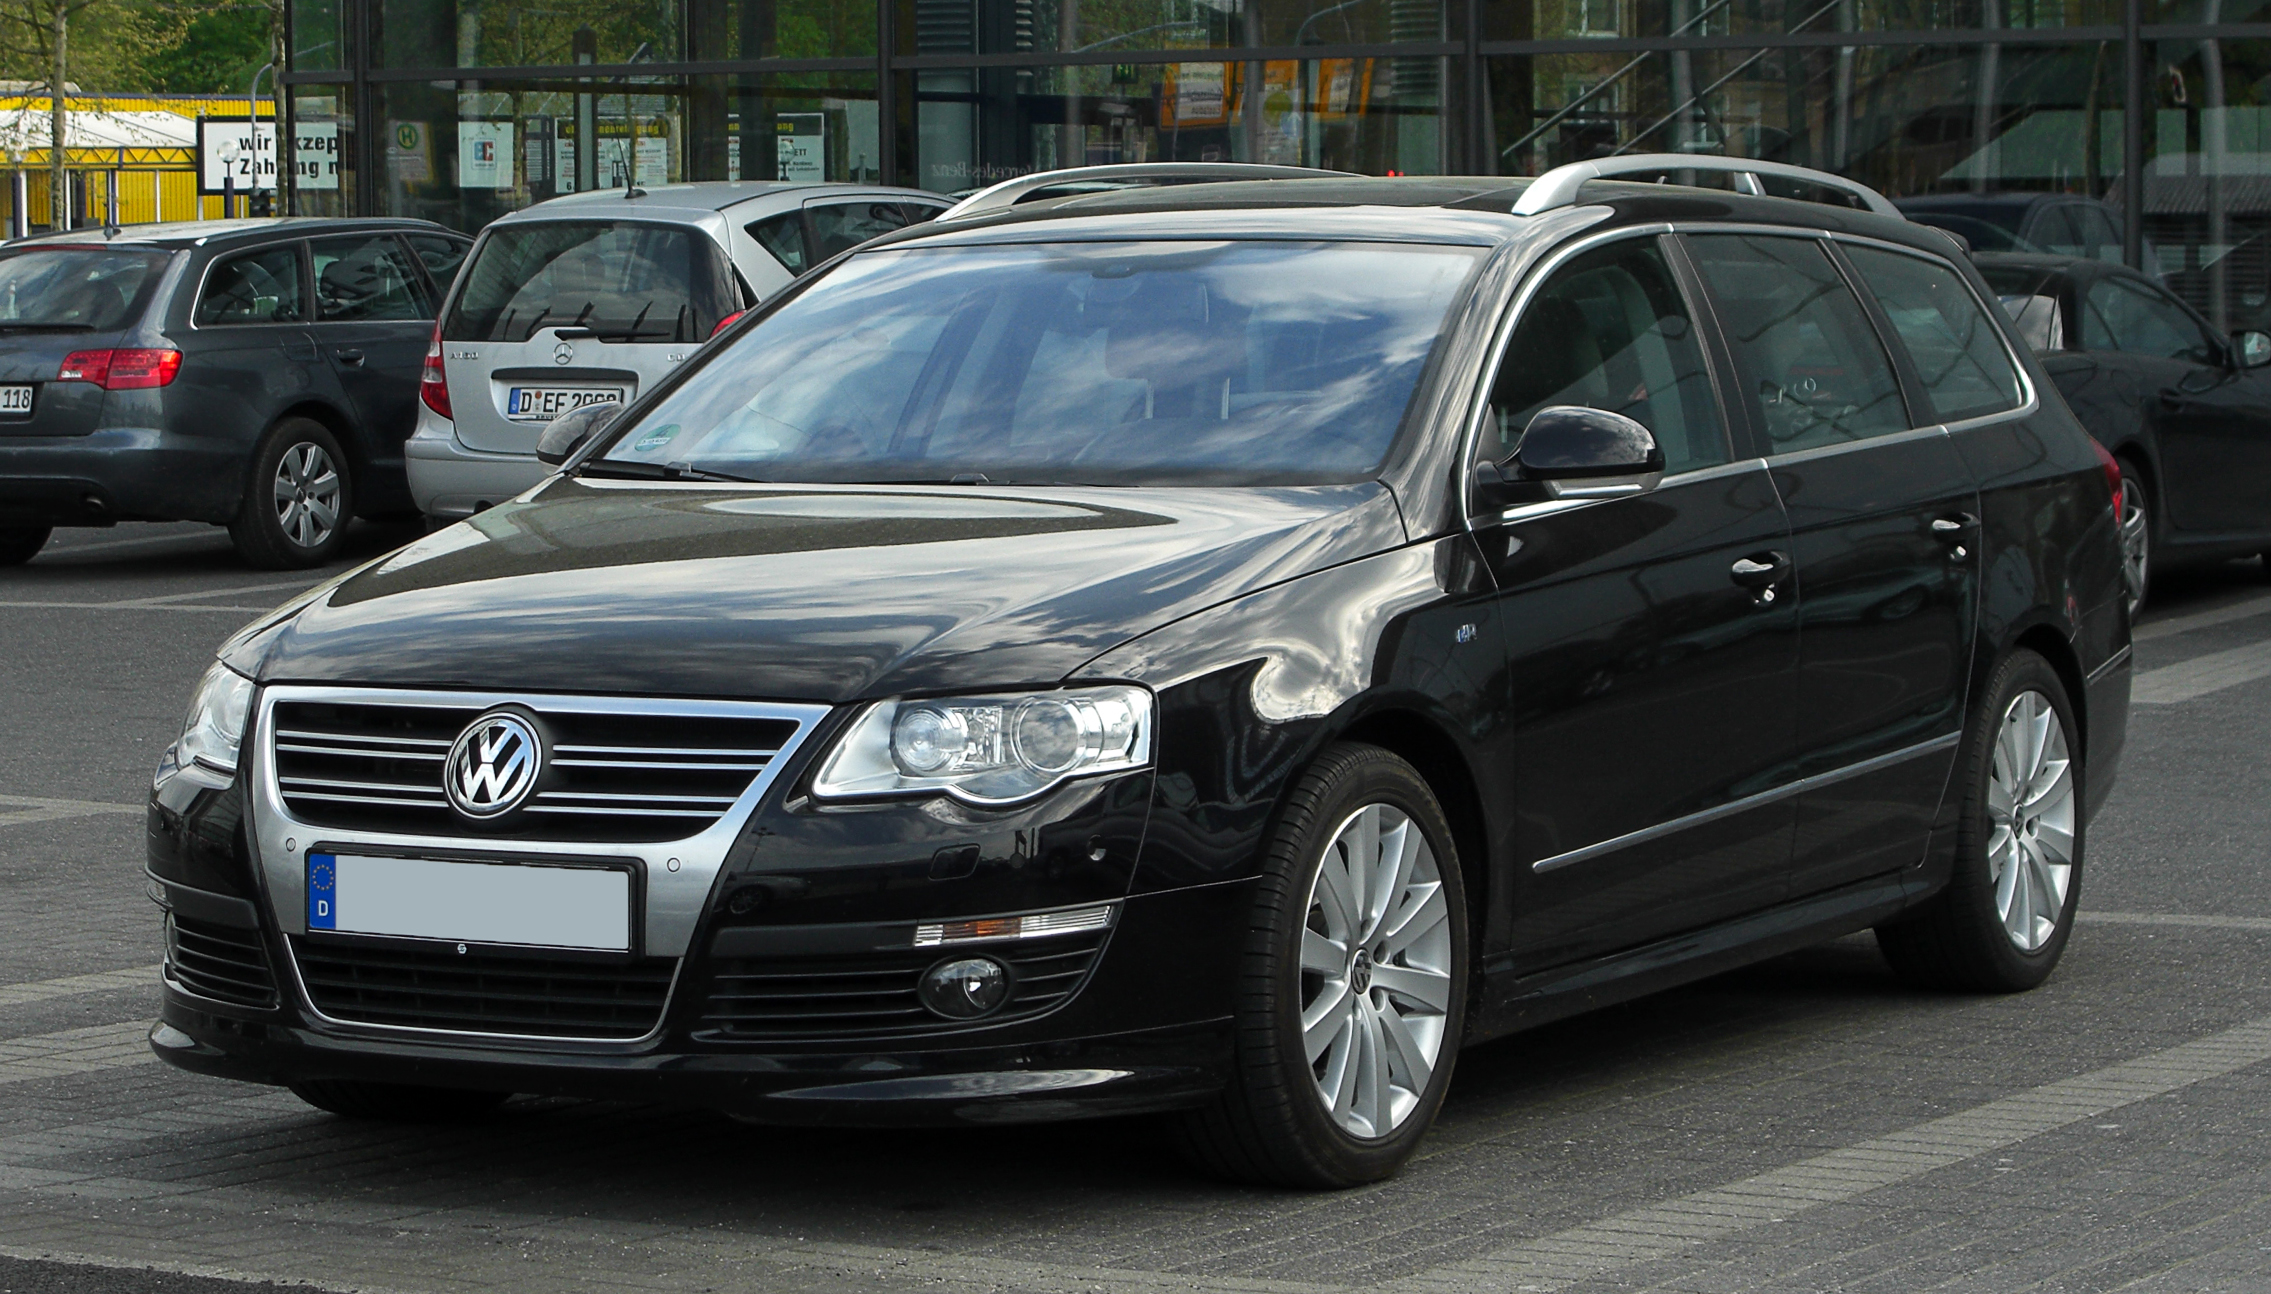 file vw passat variant r line b6 frontansicht 17 april 2011 d wikimedia. Black Bedroom Furniture Sets. Home Design Ideas